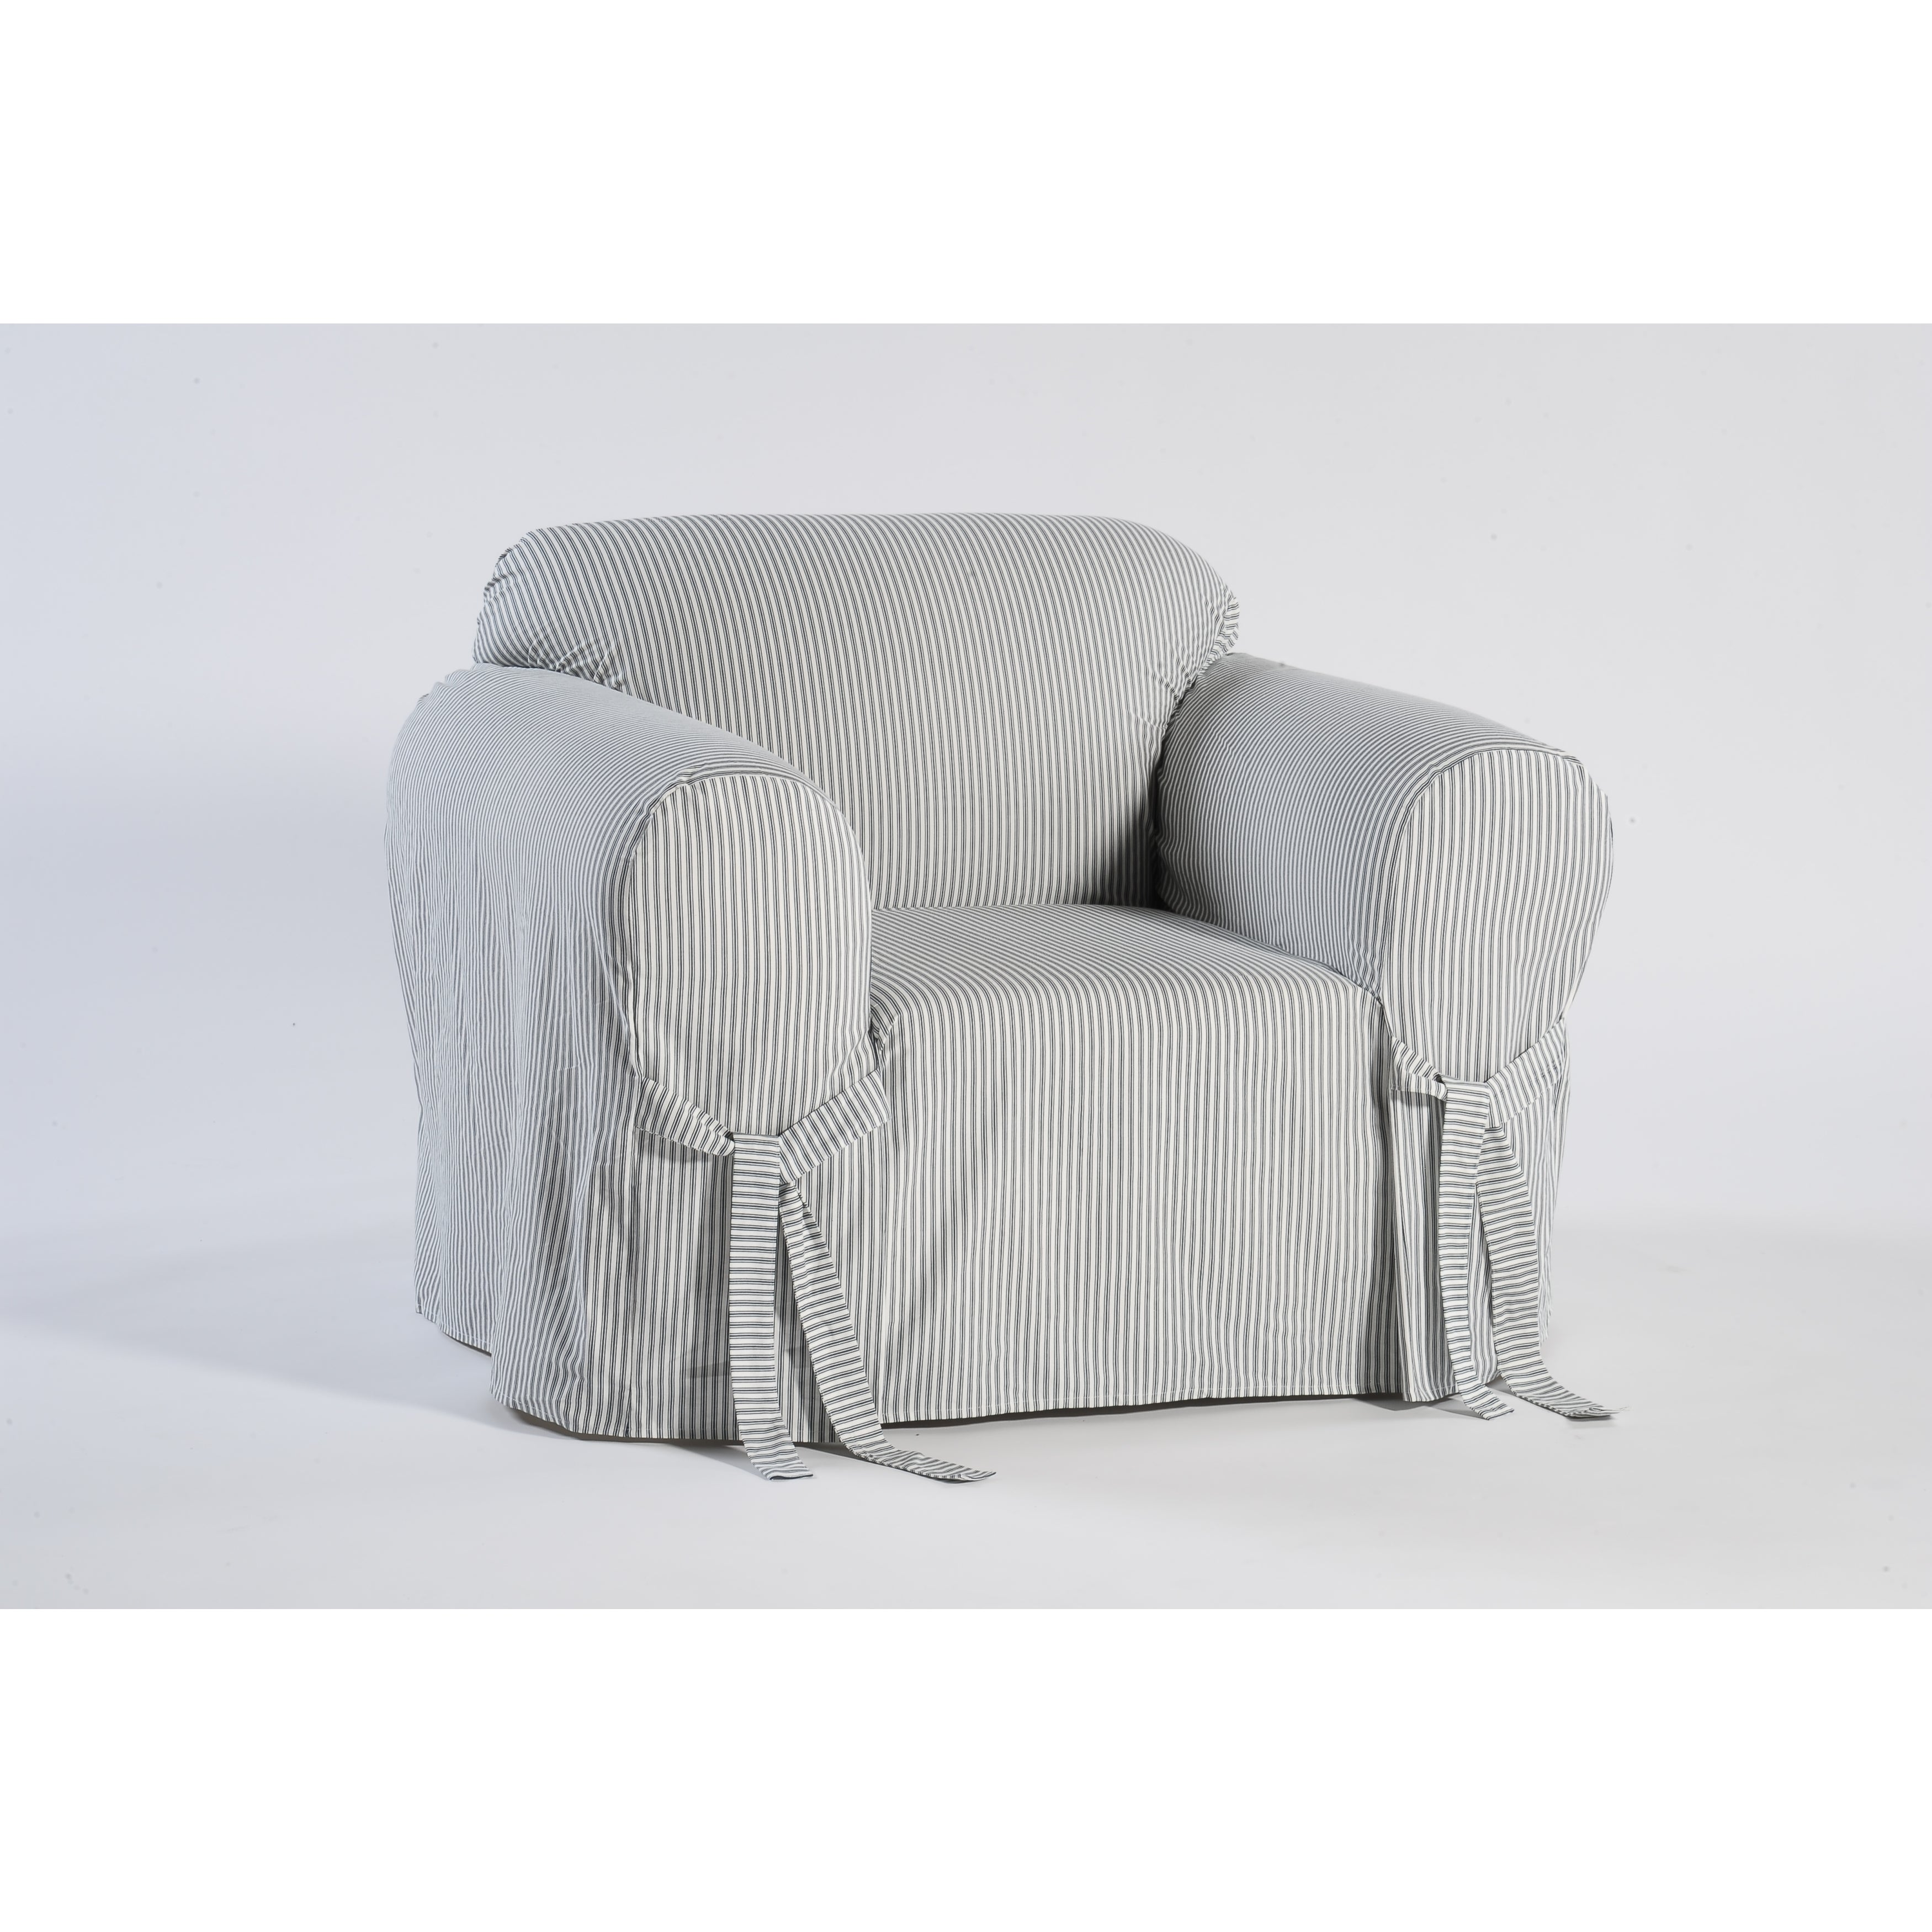 Clic Slipcovers Brushed Twill Chair Slipcover